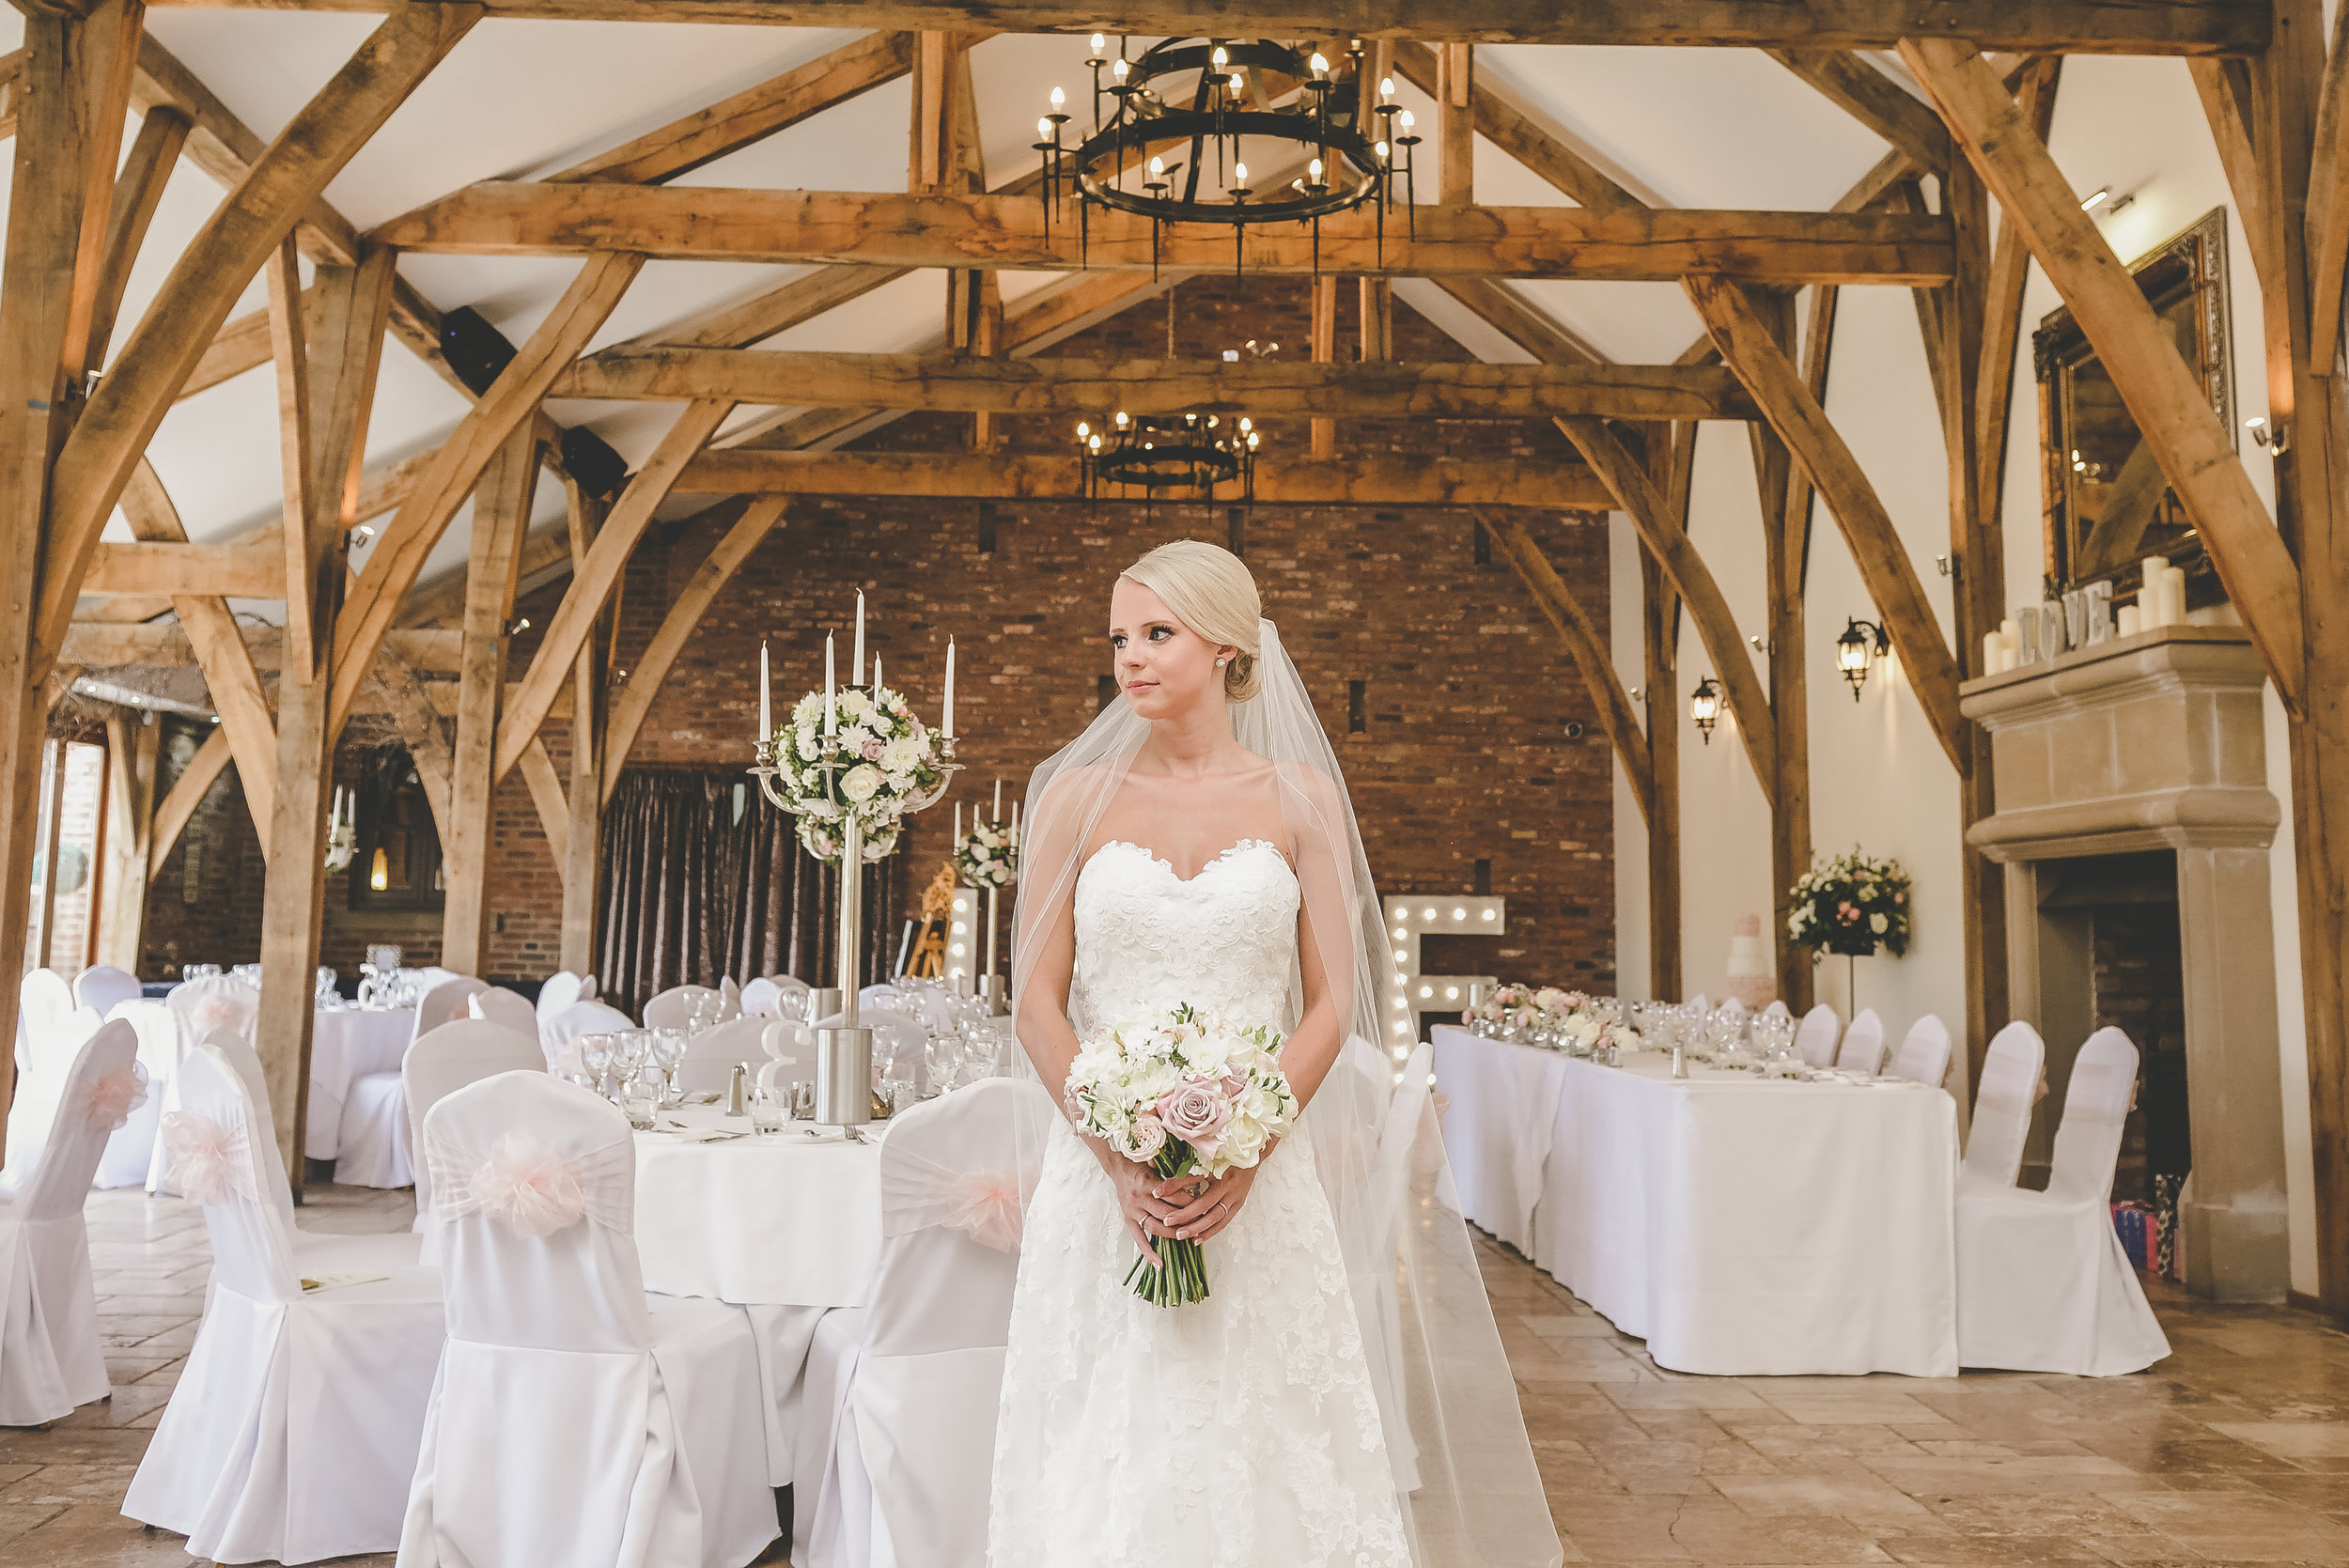 Swancar Farm Country House Wedding